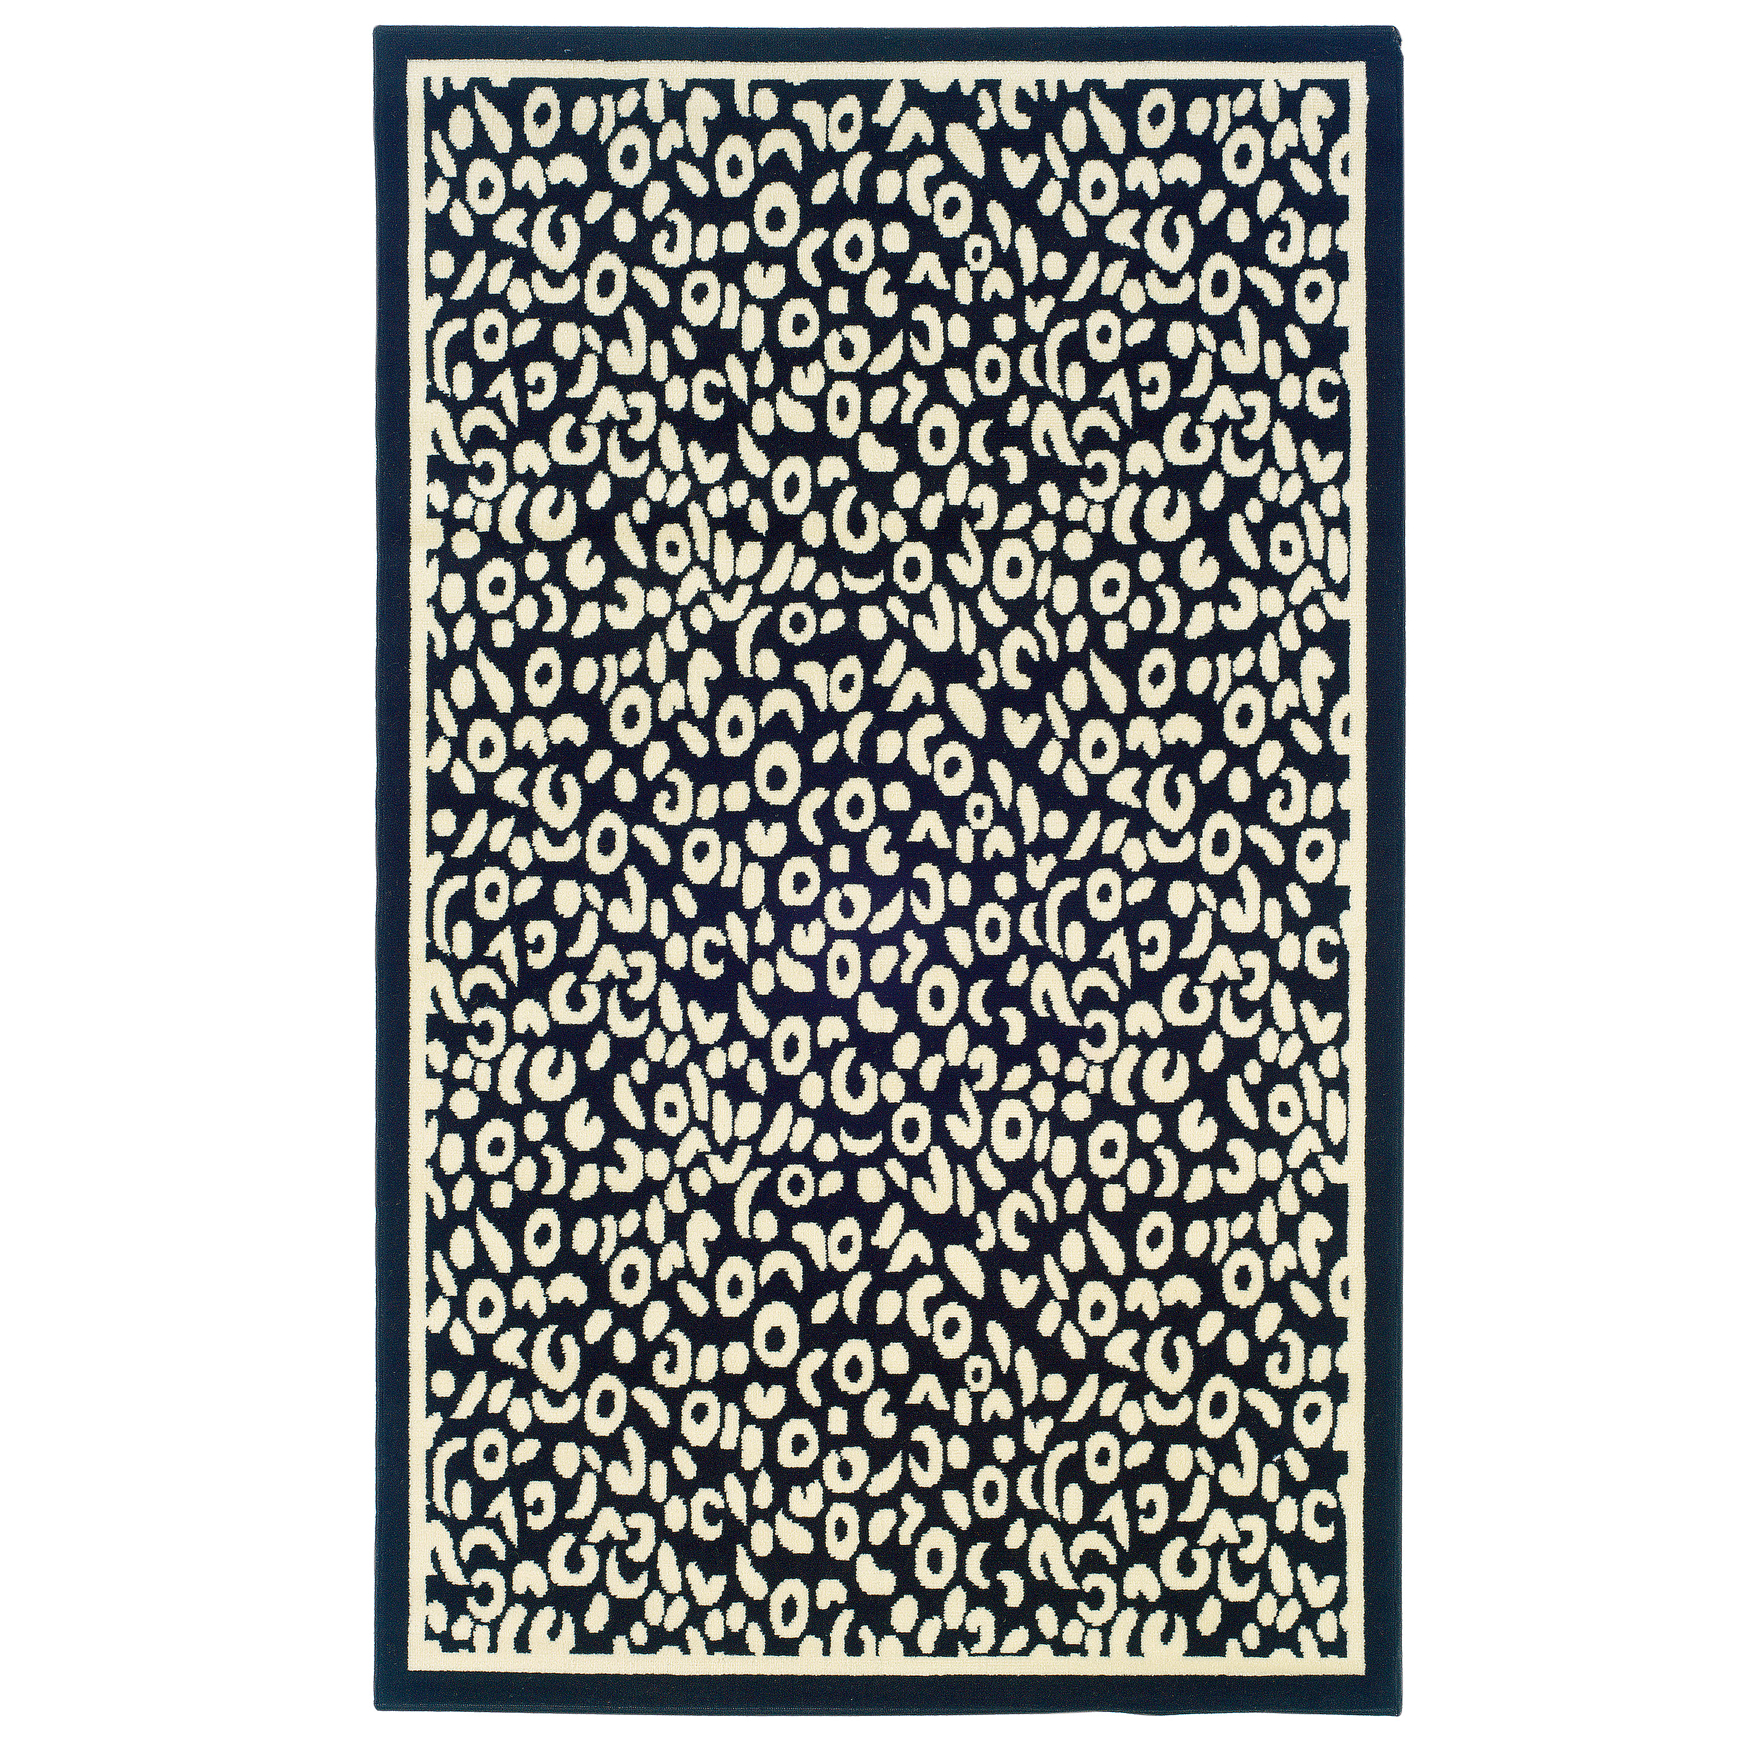 Capri Black/White 5' x 7' Area Rug, BLACK WHITE